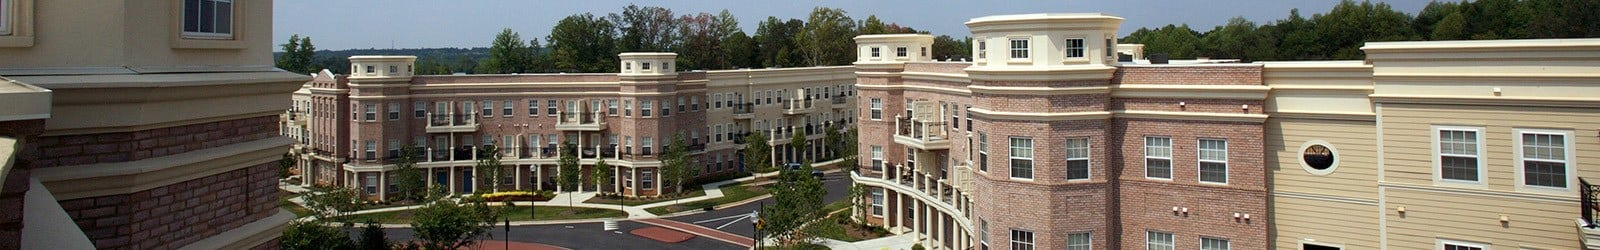 luxury 1 & 2 bedroom apartments in charlotte, nc